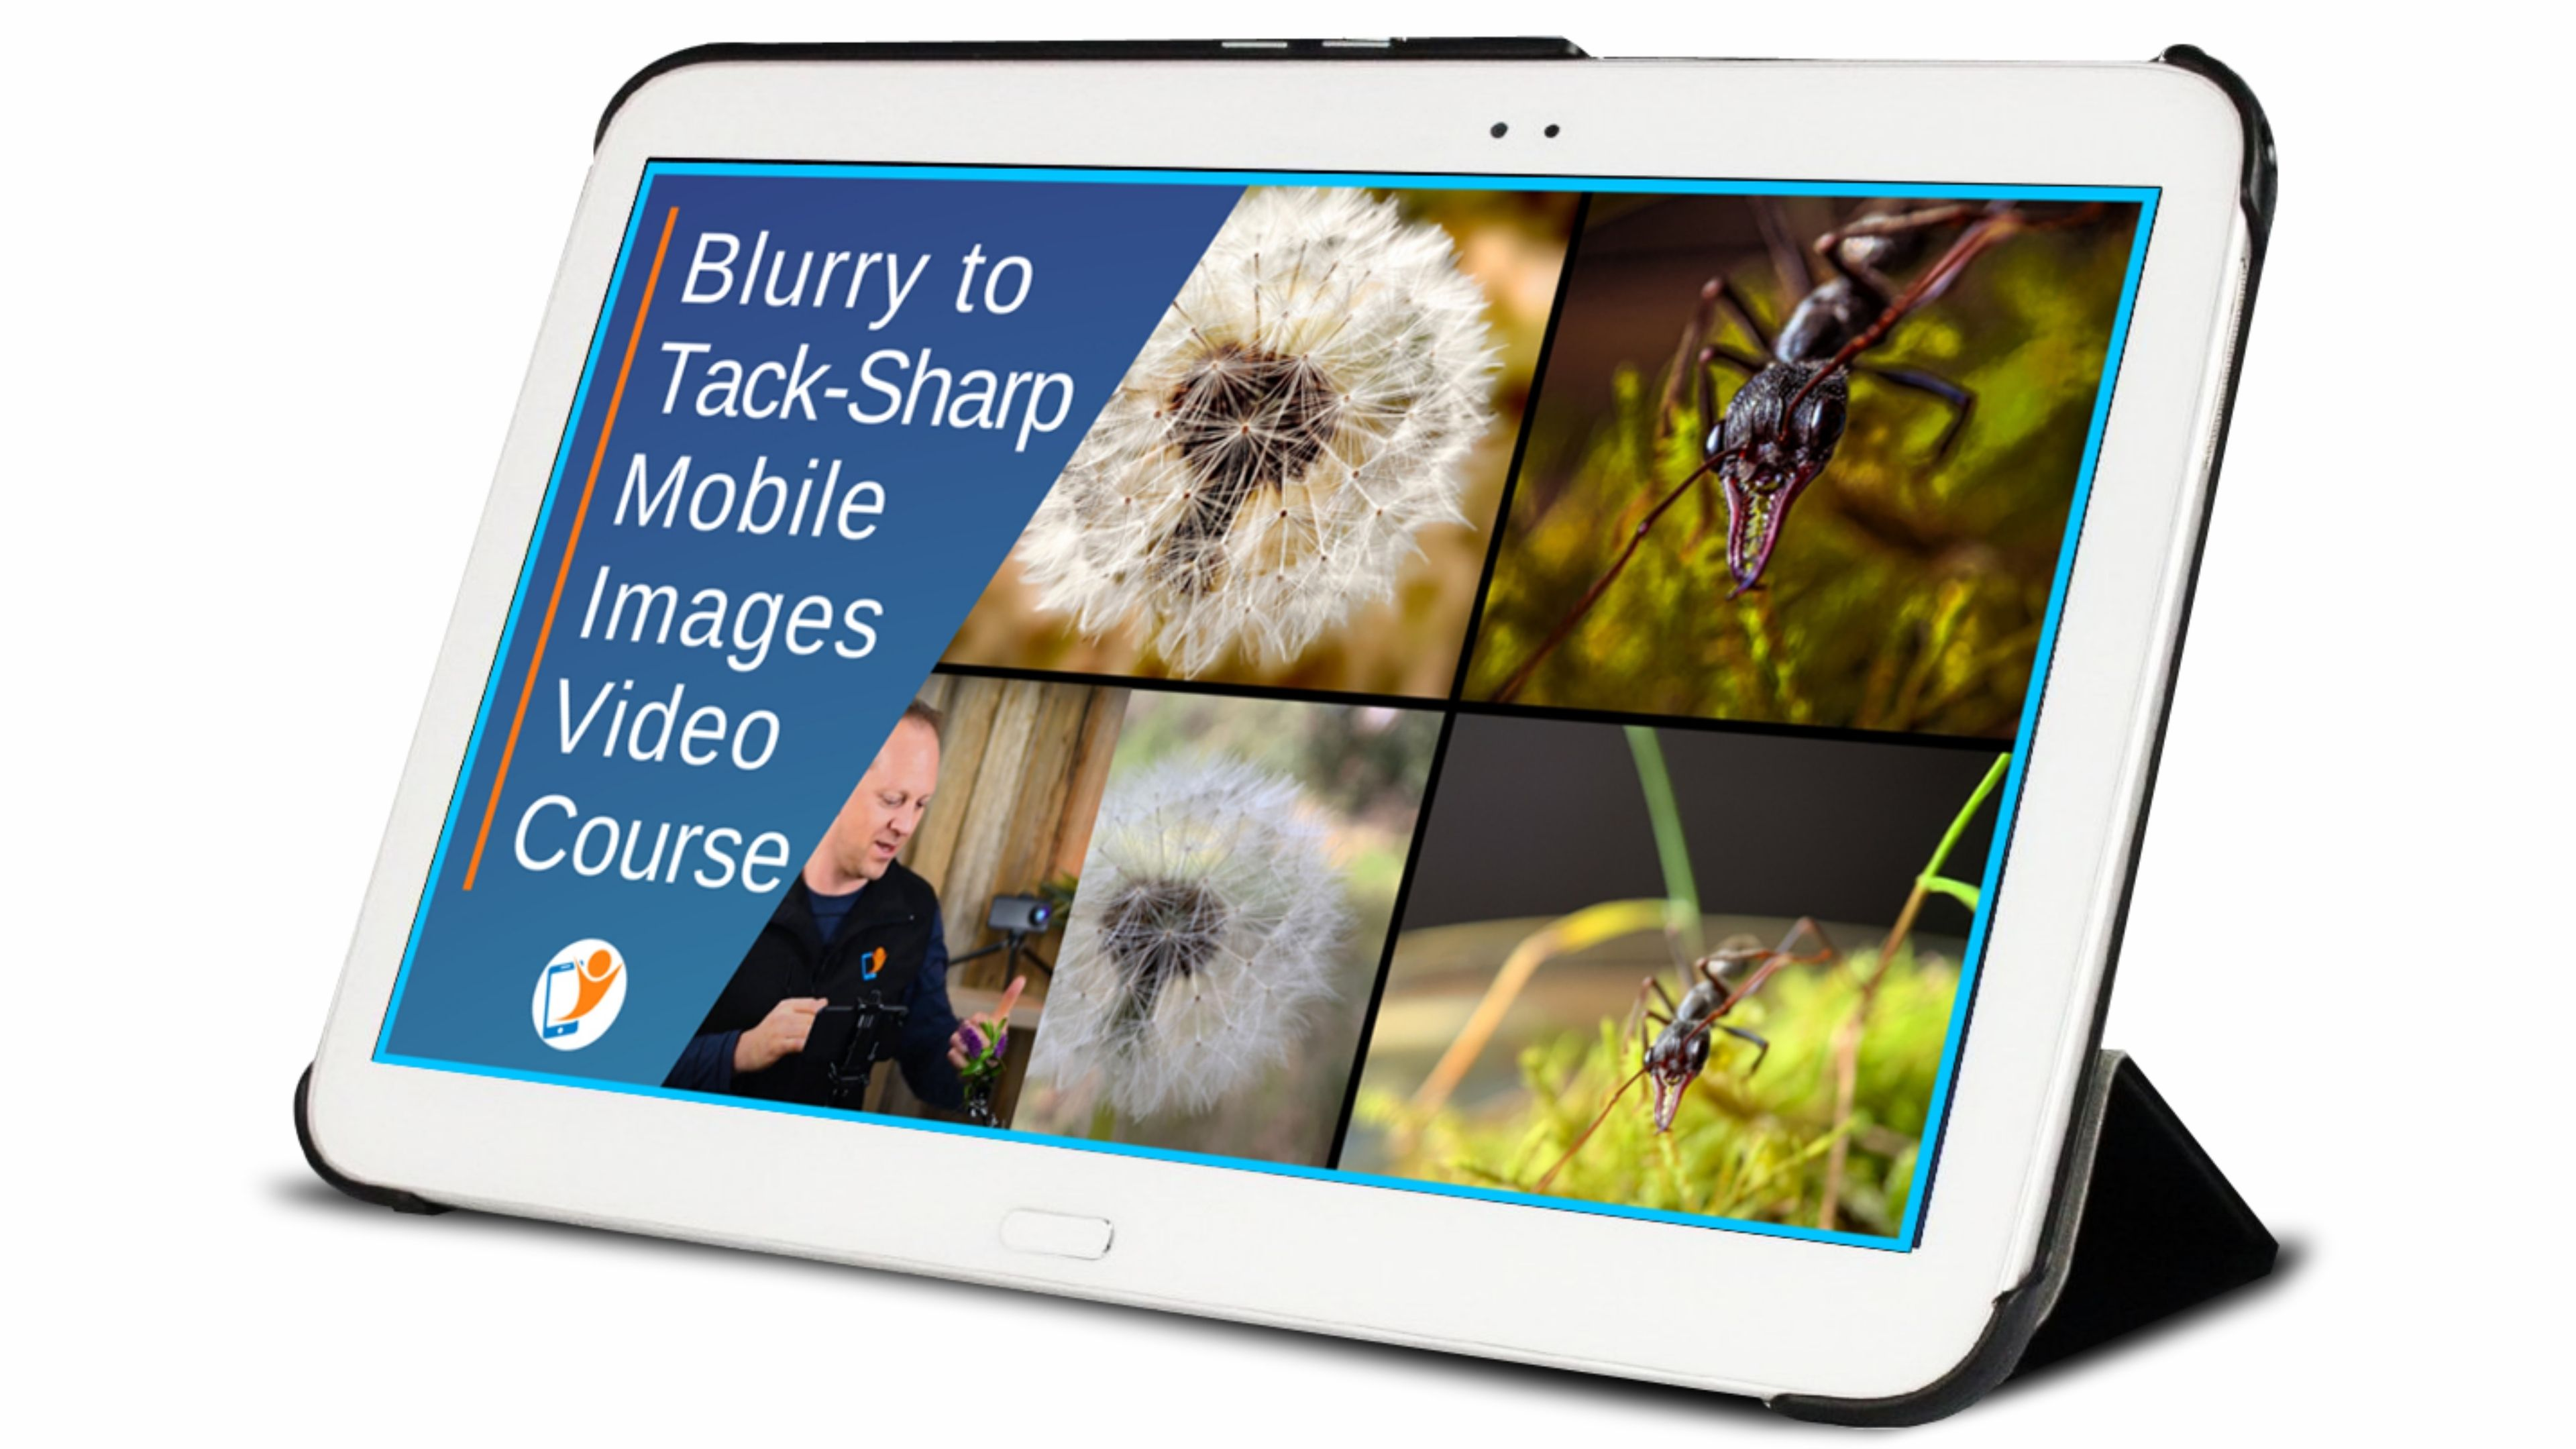 Video Course - Blurry to Tack-Sharp Mobile Images smartphone mobile photography course